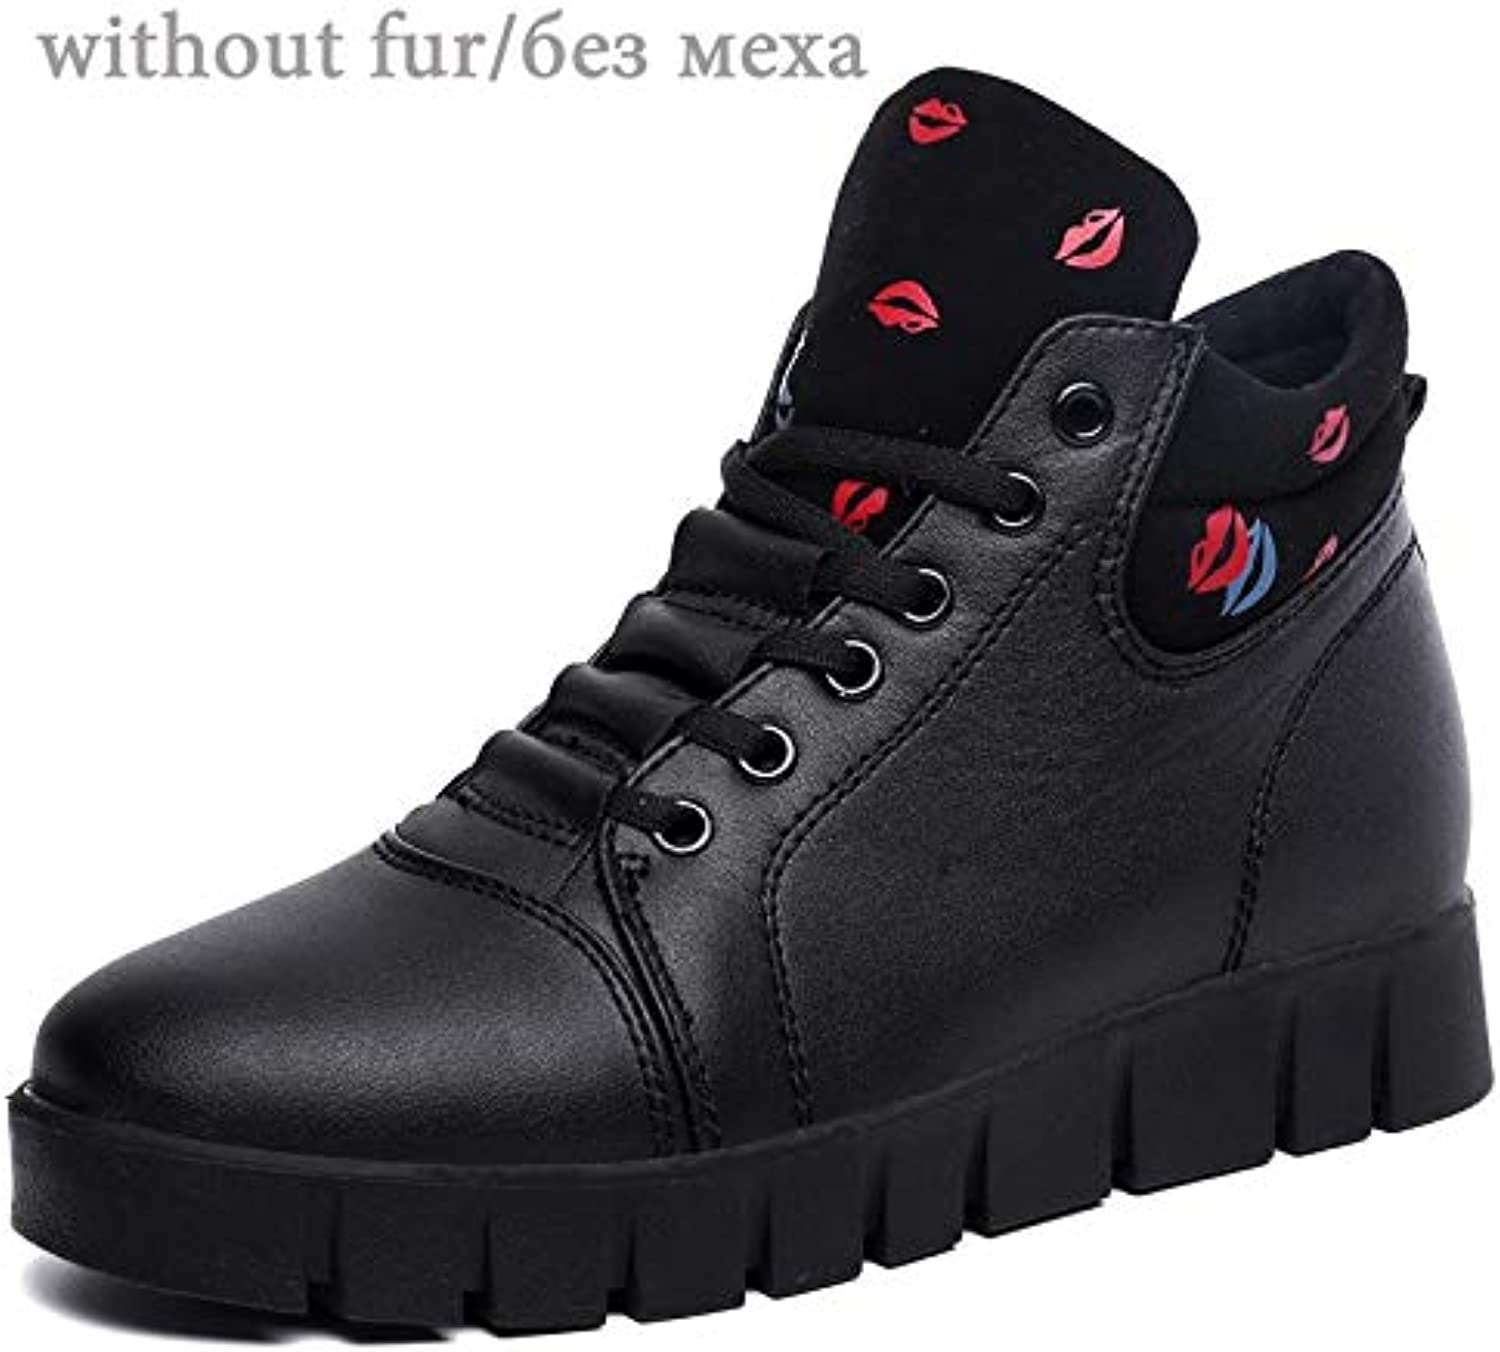 Fumak 2018 Women Boots Winter Boots Woman Warm with Fur Ankle Boots for Women Leather High Top Sneakers Plush shoes